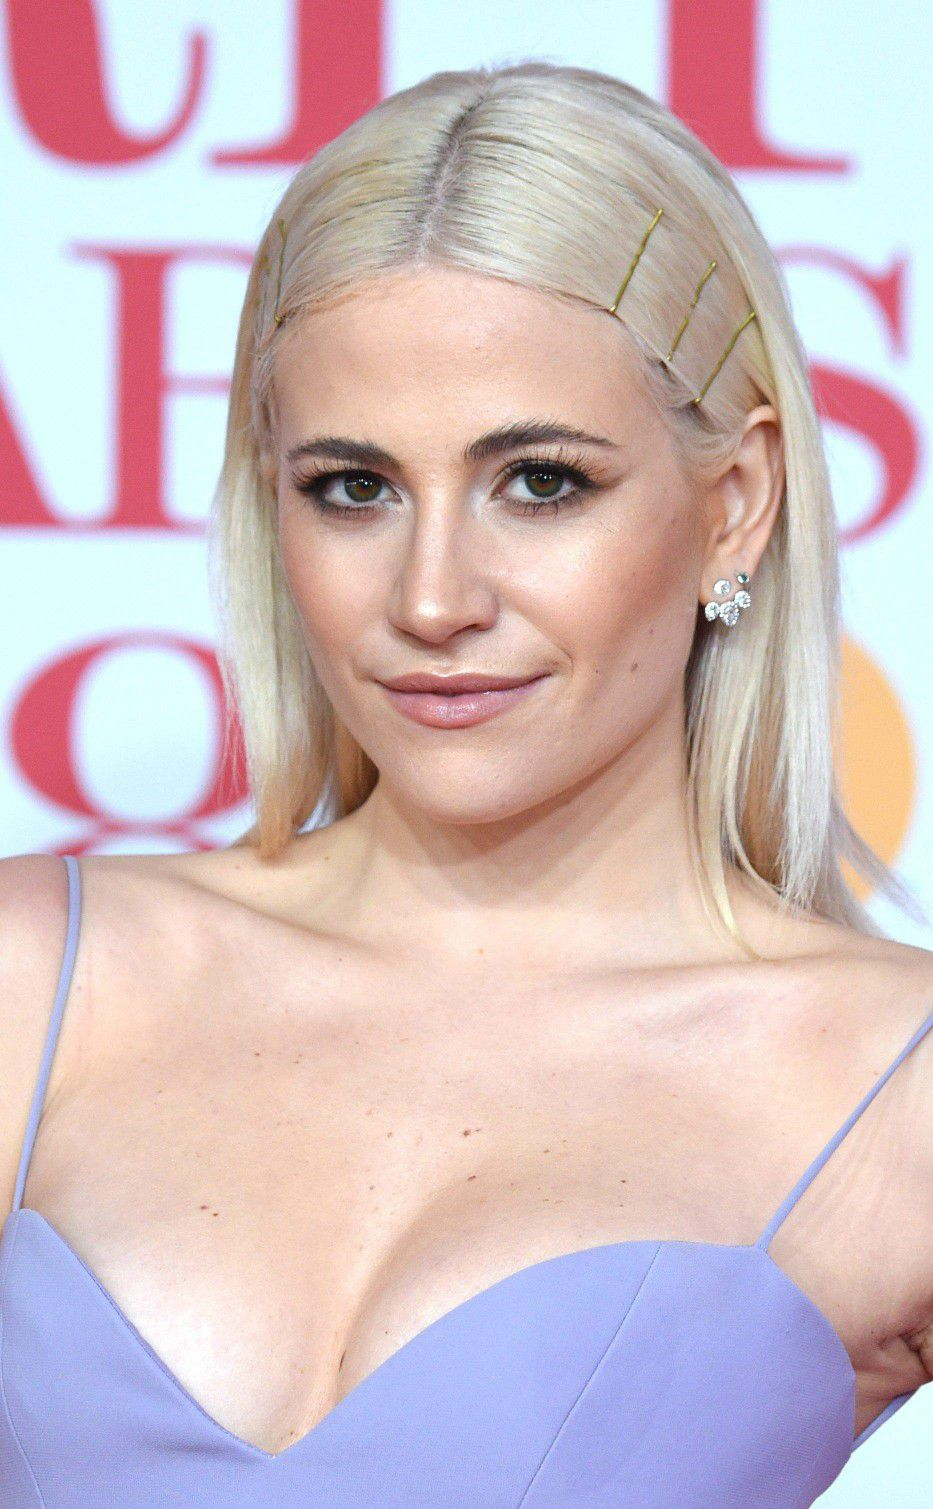 pixie-lott-panty-upskirt-at-the-38th-brit-awards-in-london-2536